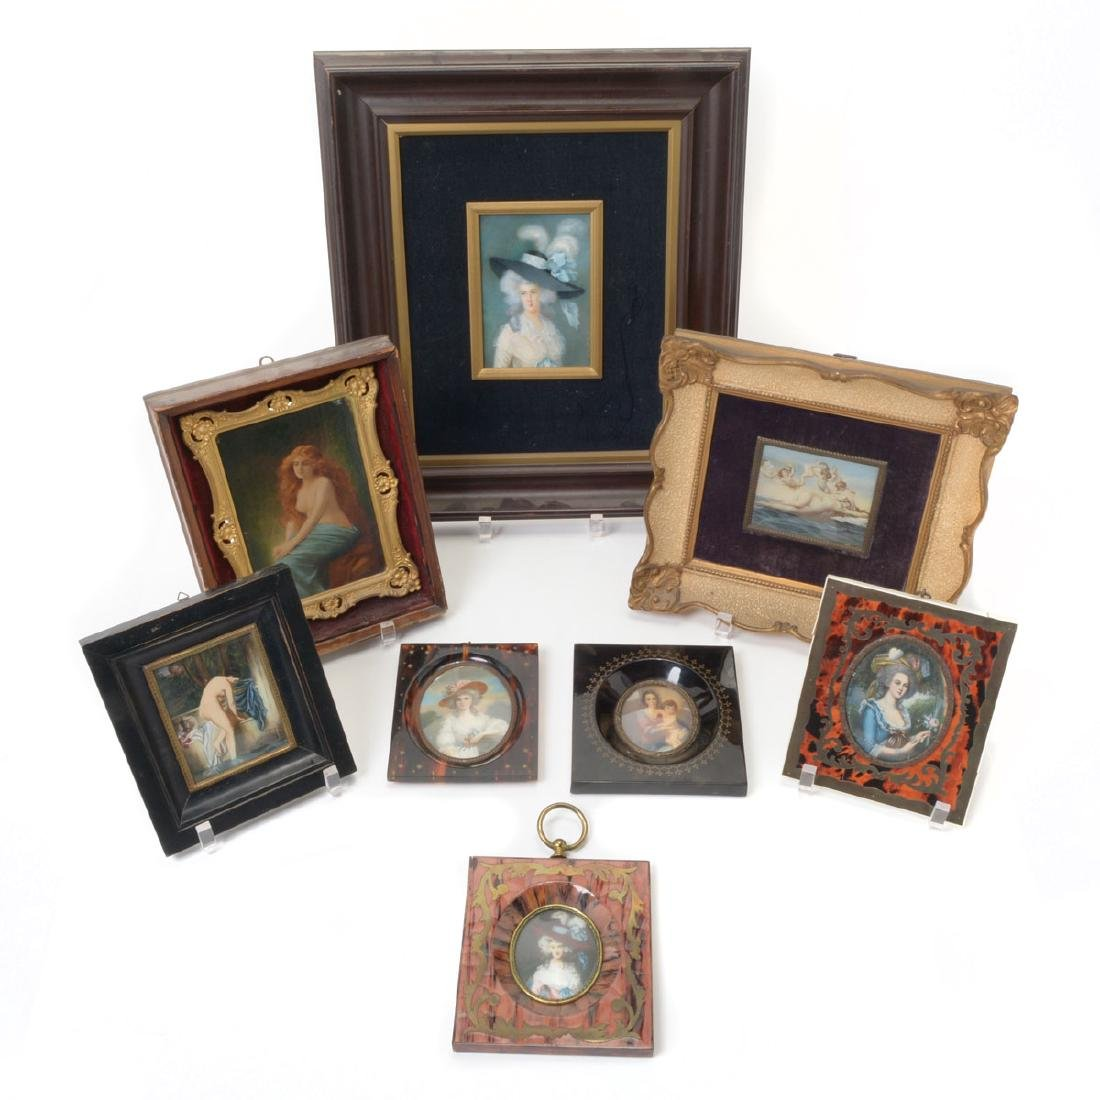 Eight Miniature Paintings Including Famous Artworks